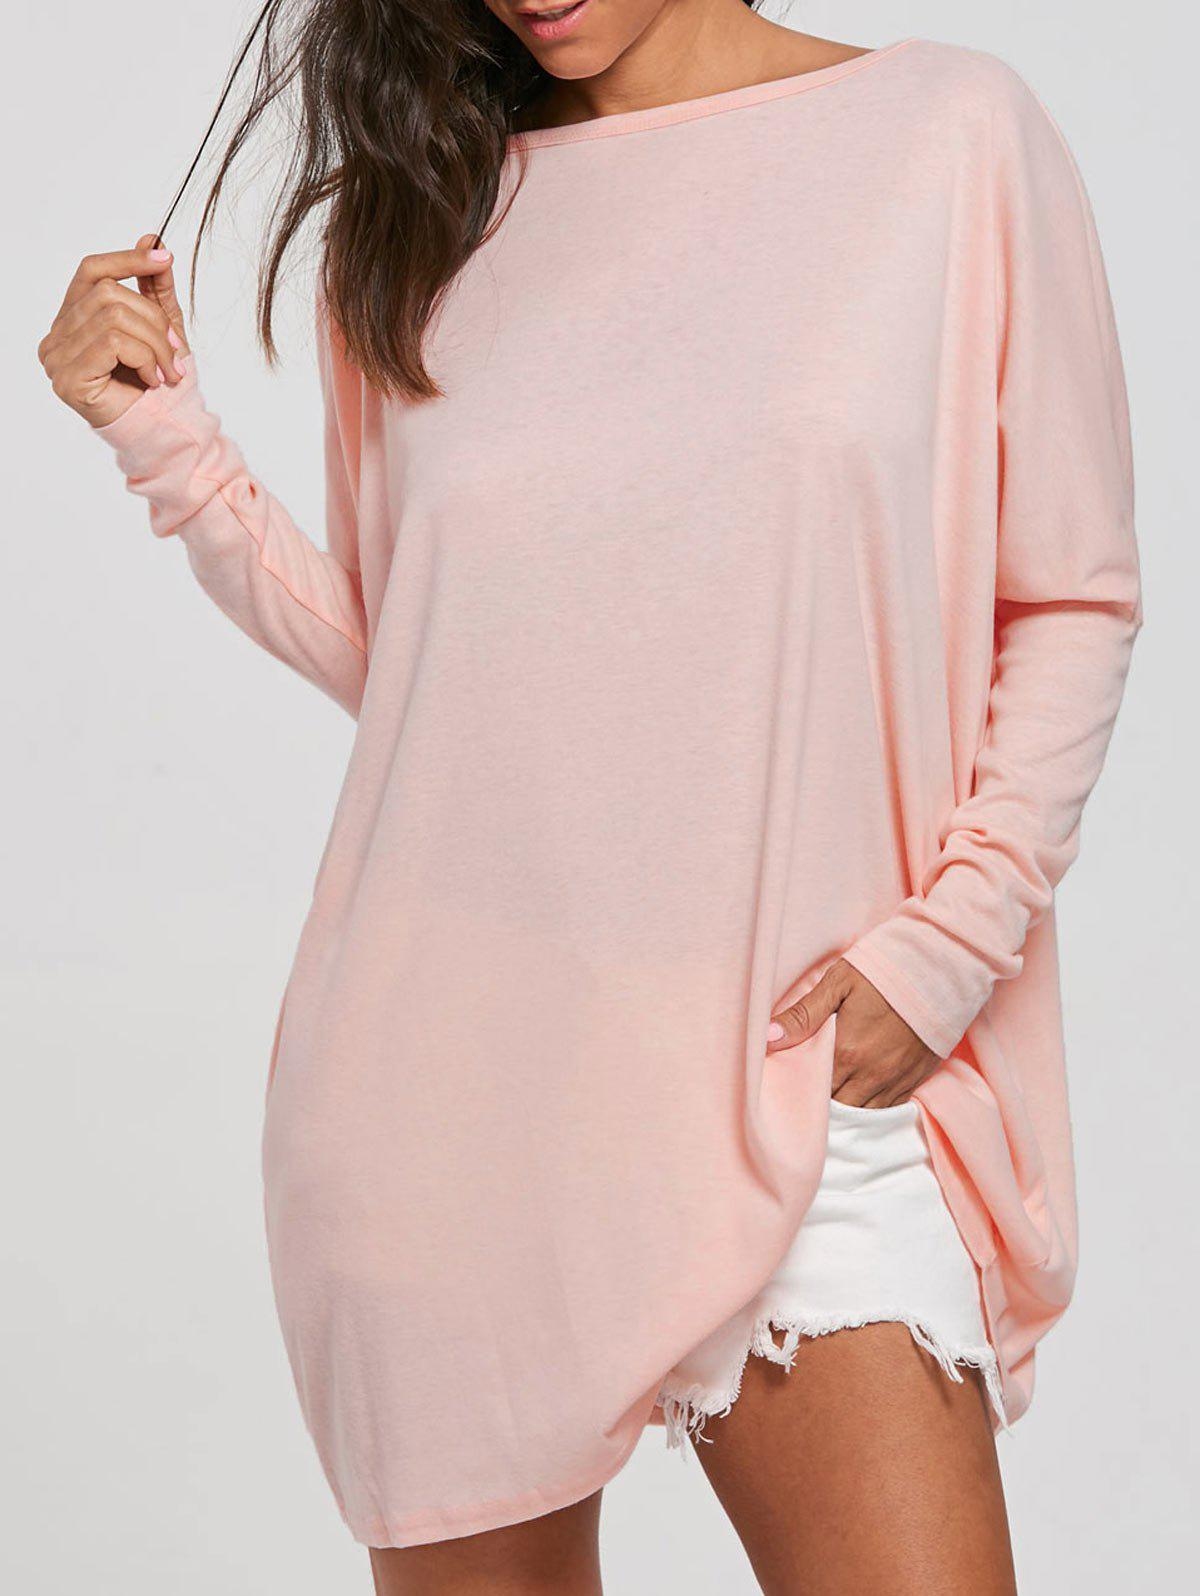 Top de tunique à manches batwing - ROSE PÂLE S